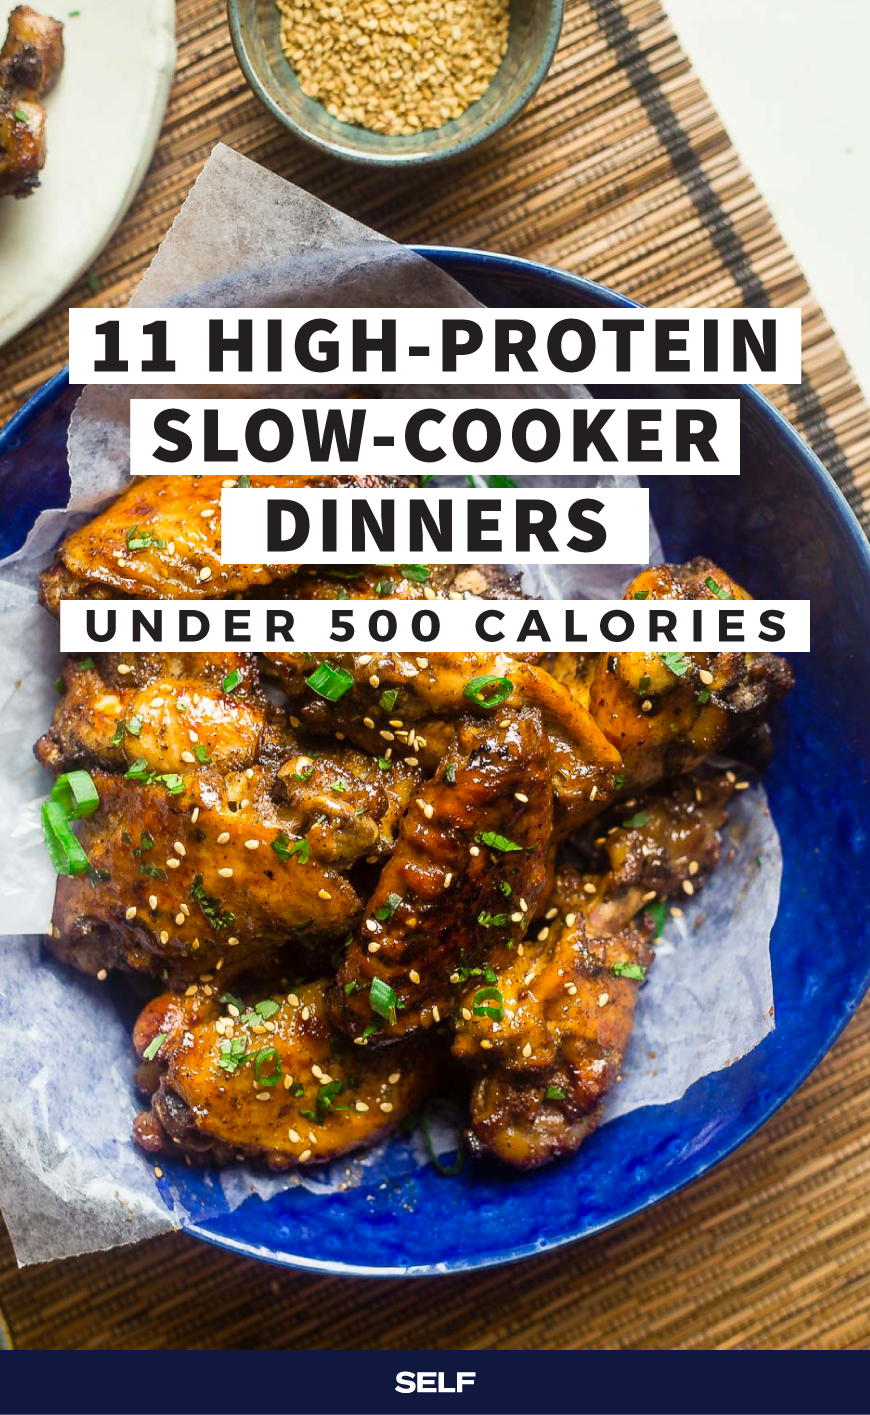 11 HighProtein SlowCooker Dinners Under 500 Calories